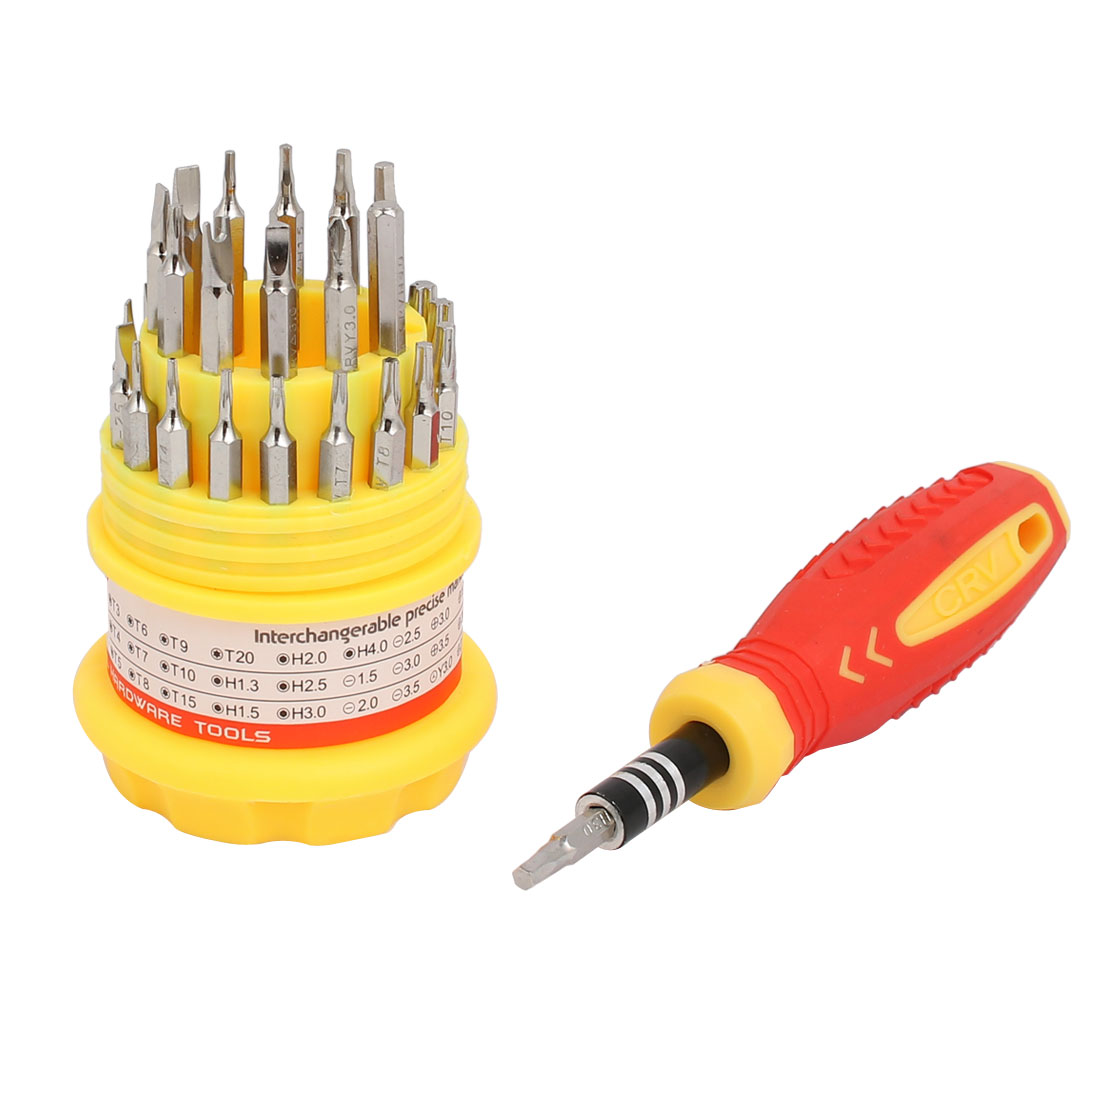 31 in 1 Magnetic Torx Slotted Hex Phillips Precision Screwdriver Set Tools Kit